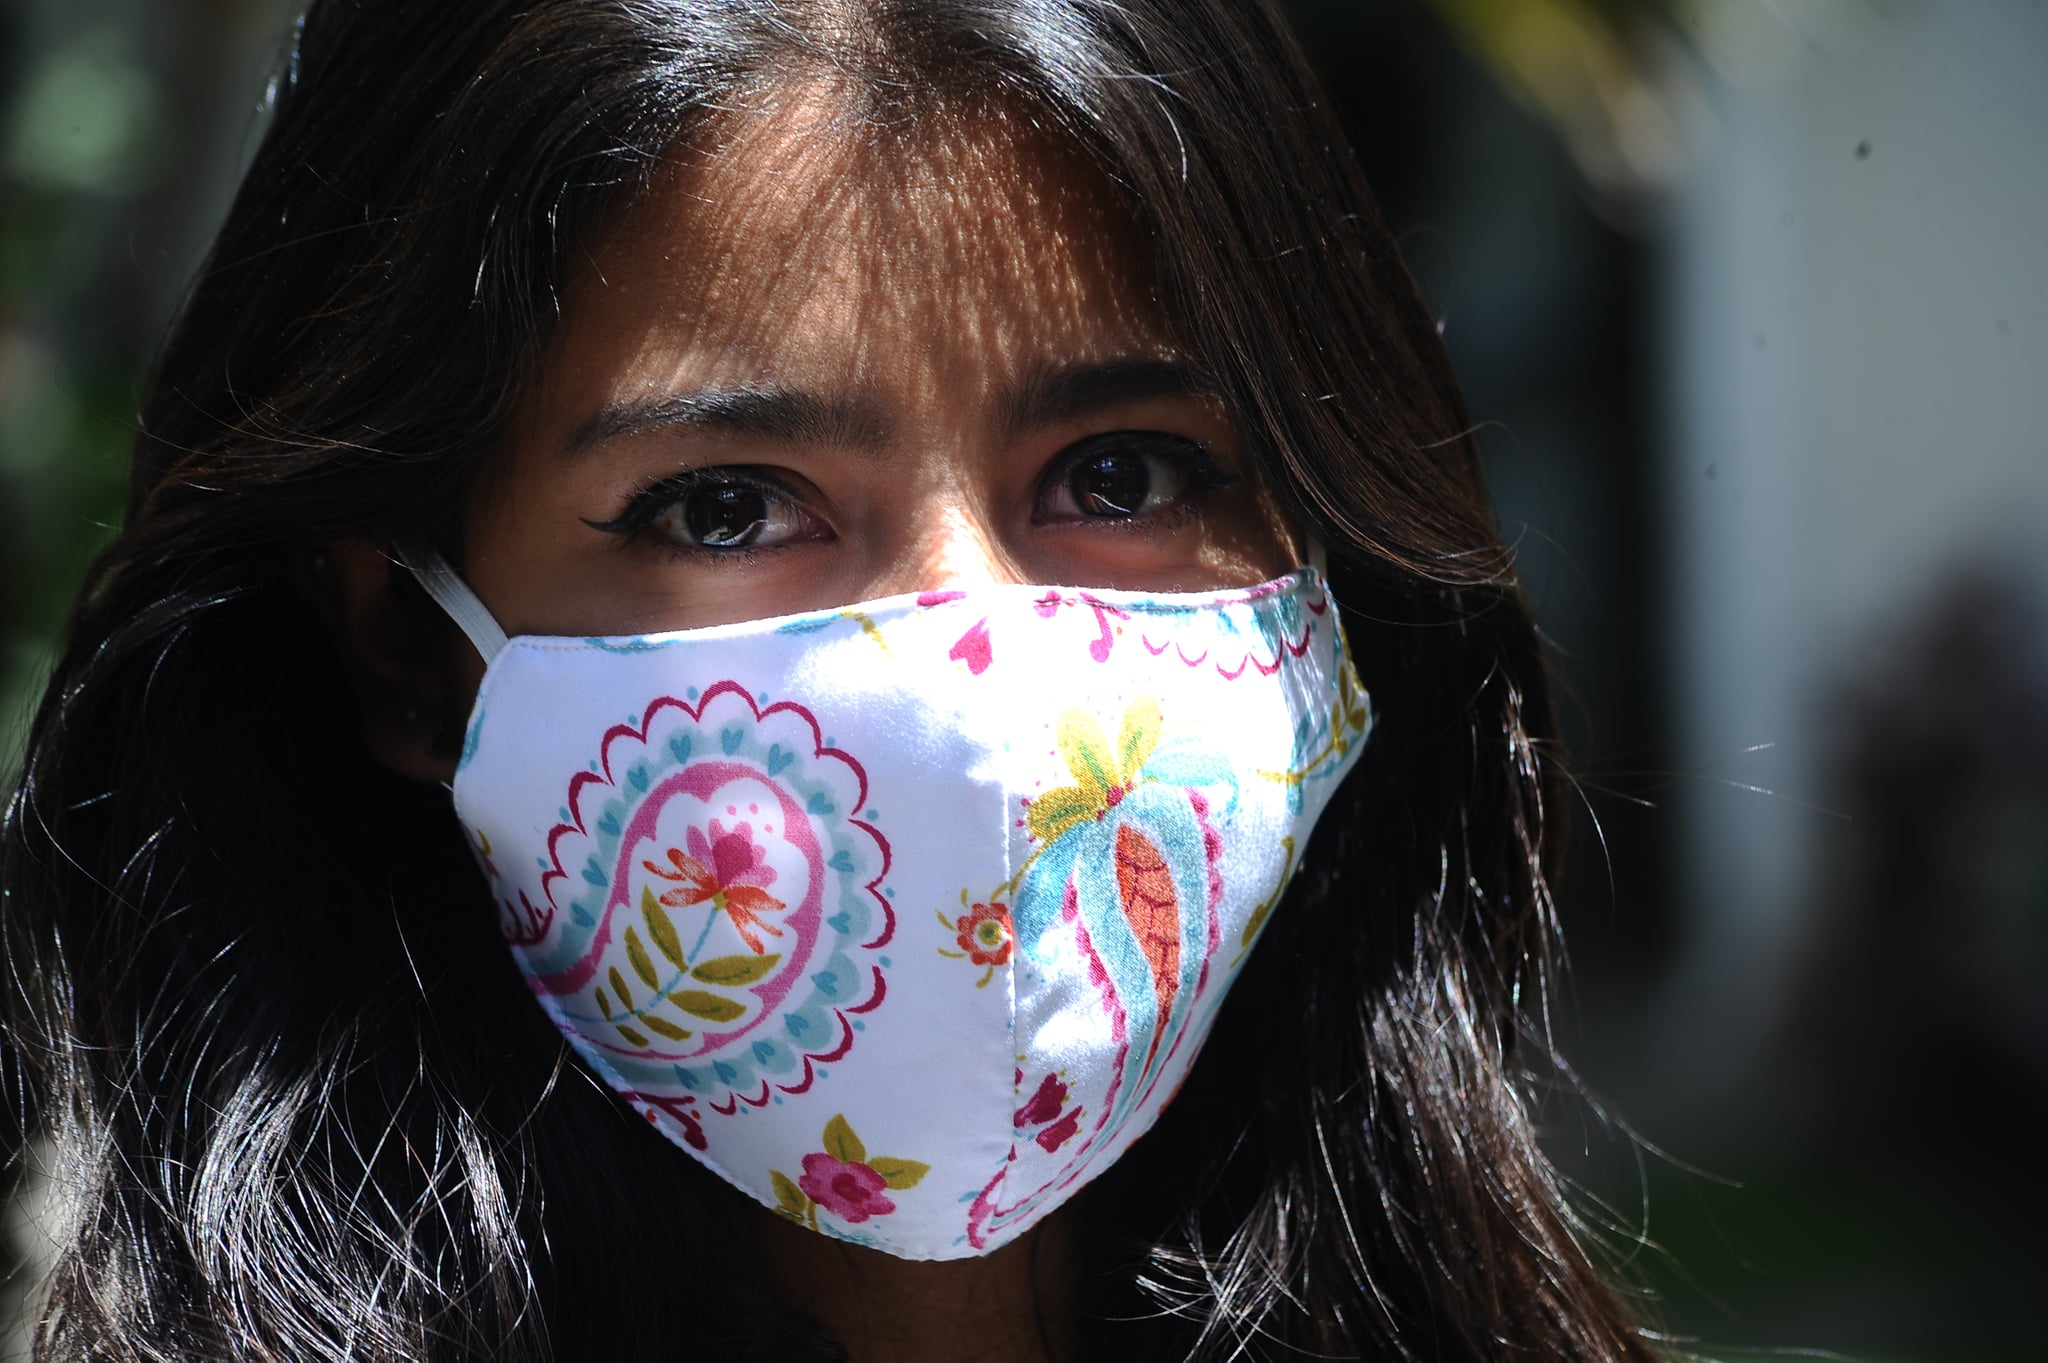 TLAXCALA, MEXICO - MAY 19, 2020: Maria de Lourdes Galindo, originally from Huamantla wears face mask while manufacturing a protective mask as an attempt to prevent Coronavirus desease , she worked in the clothing customization but due to coronavirus pandemic, has had to produce protective masks made by hand with typical fabrics from the region. On May 19, 2020 In Tlaxcala, Mexico- PHOTOGRAPH BY Fernando Camacho / Eyepix Group/ Barcroft Studios / Future Publishing (Photo credit should read Fernando Camacho / Eyepix Group/Barcroft Media via Getty Images)